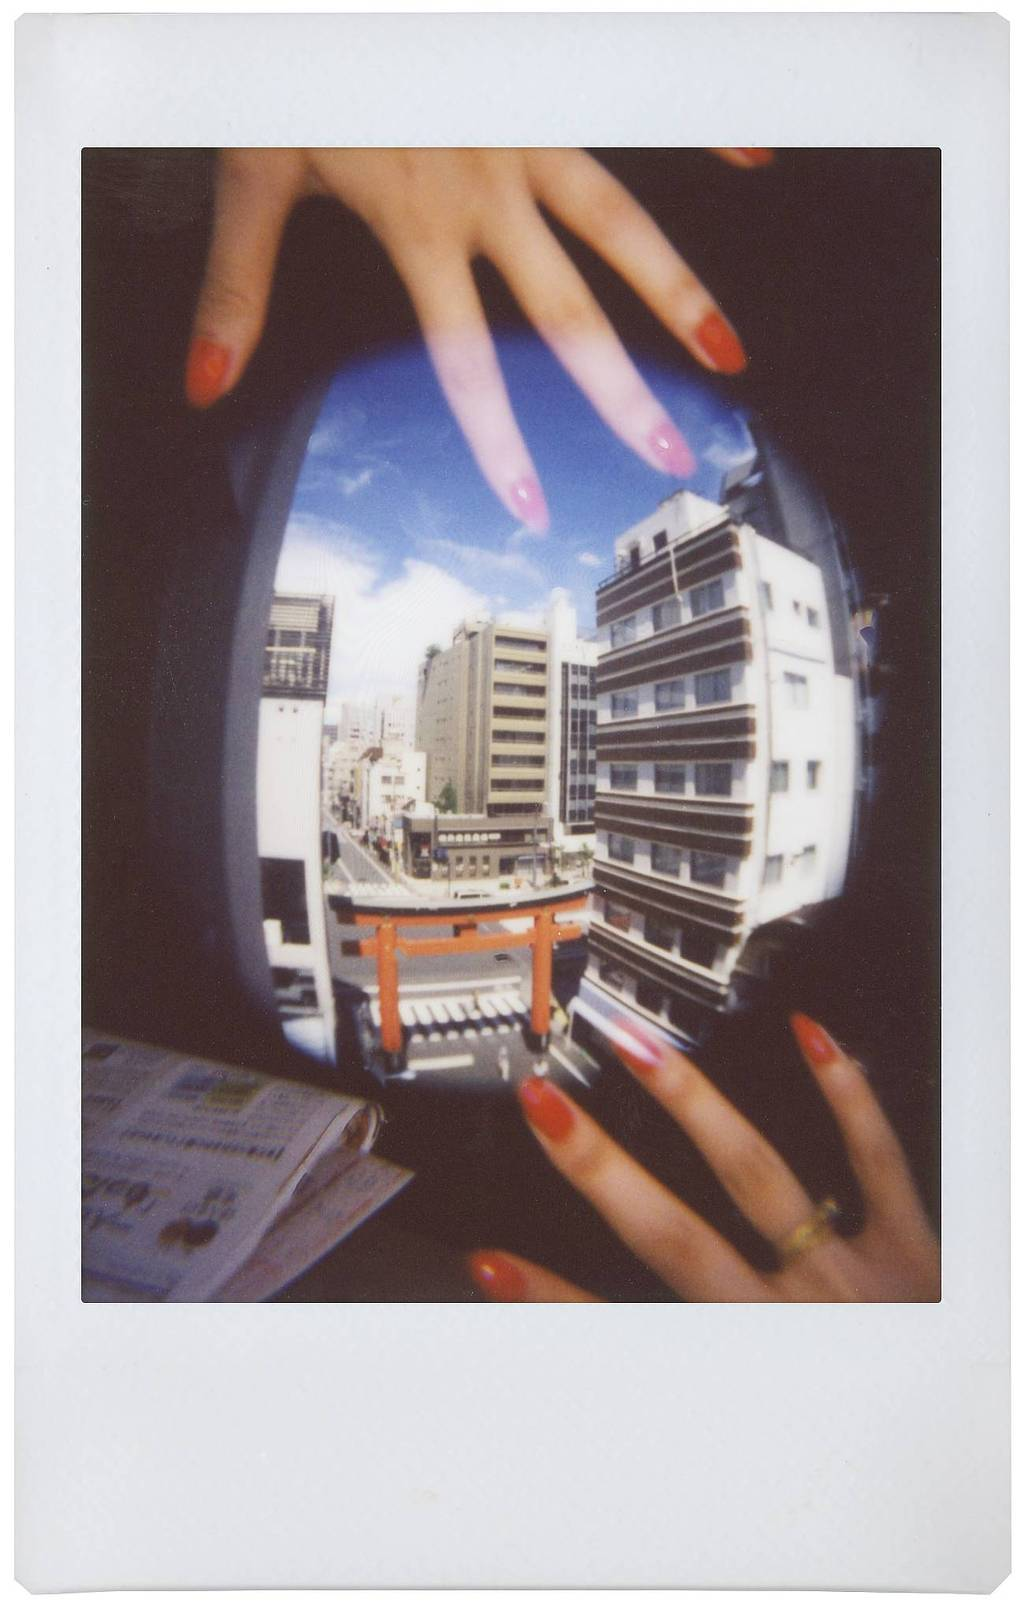 Lomo'Instant Automat Tips and Tricks